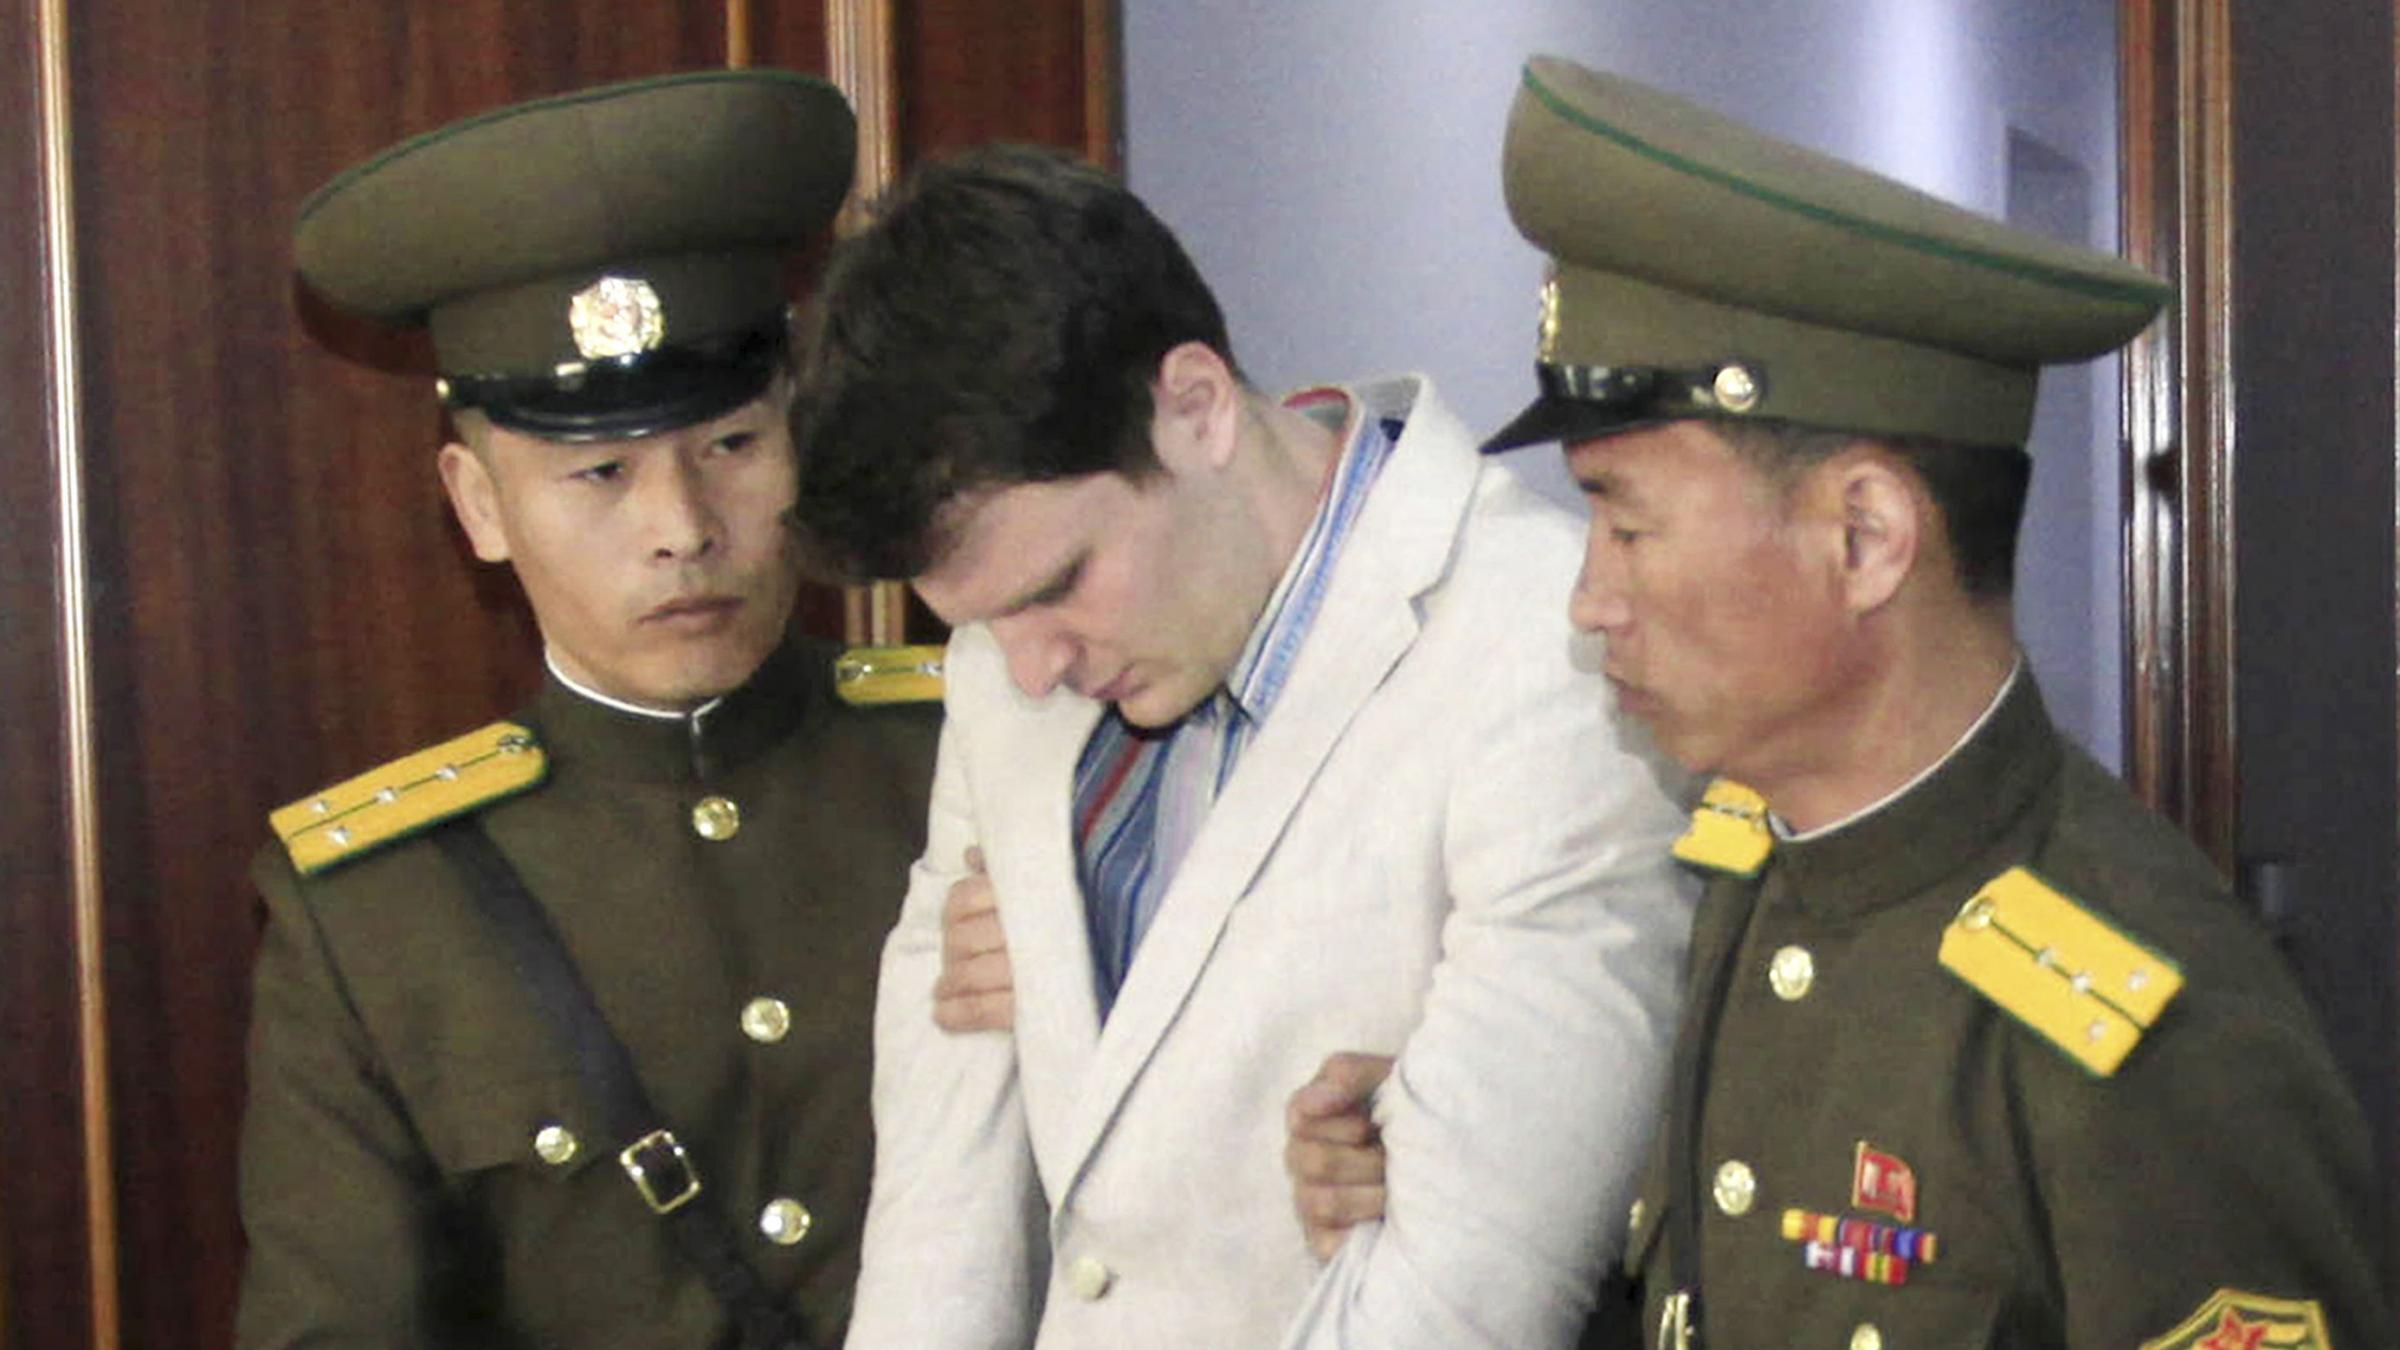 Doctors: Ex-North Korea detainee has severe brain damage